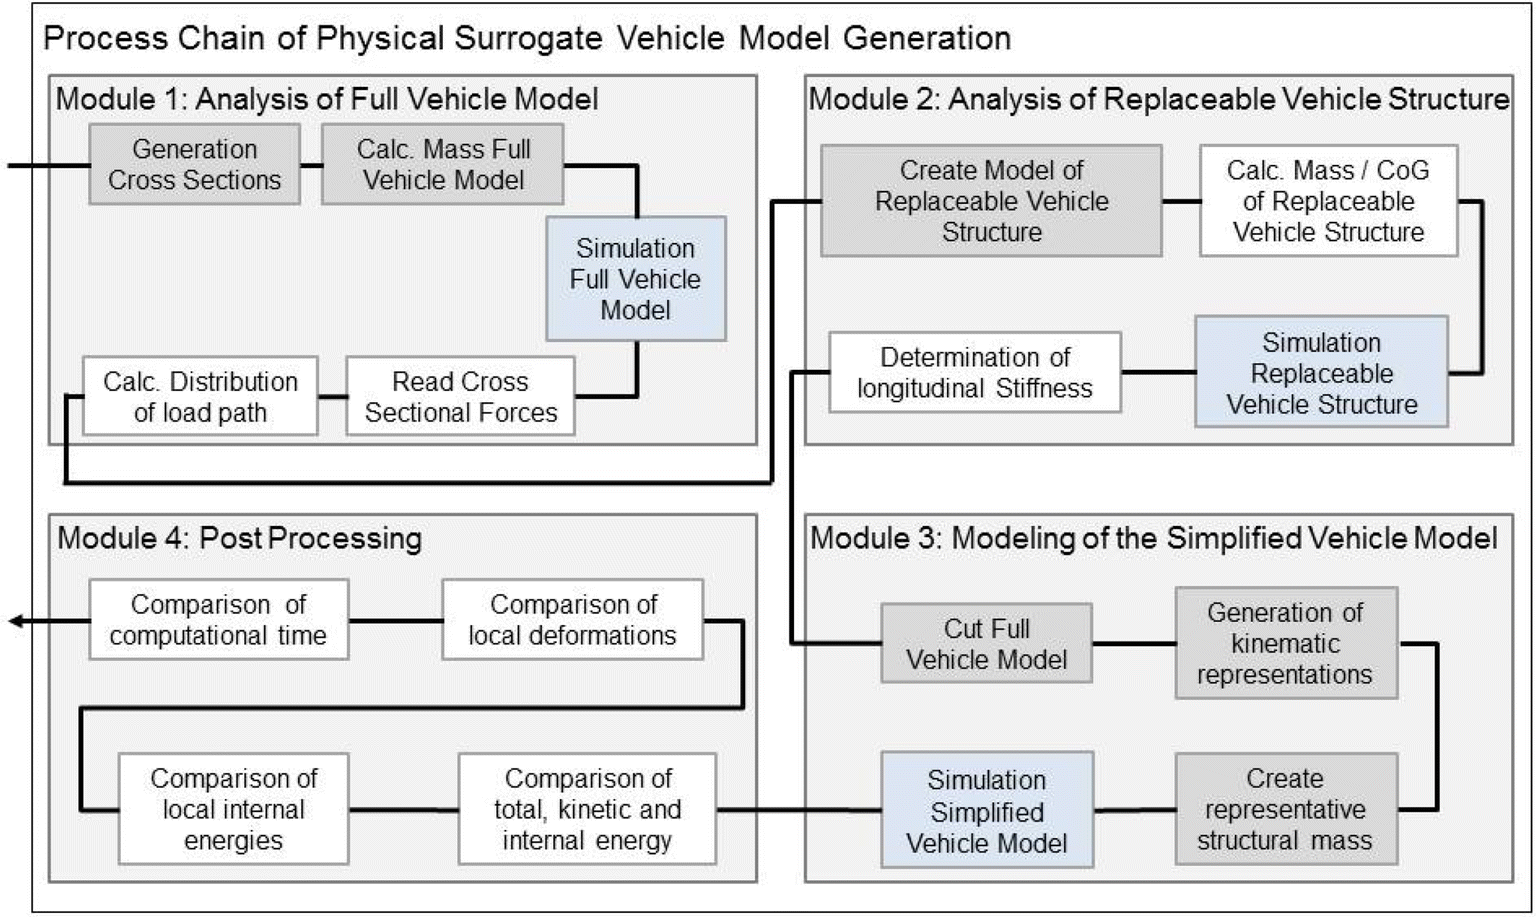 Automated generation of physical surrogate vehicle models